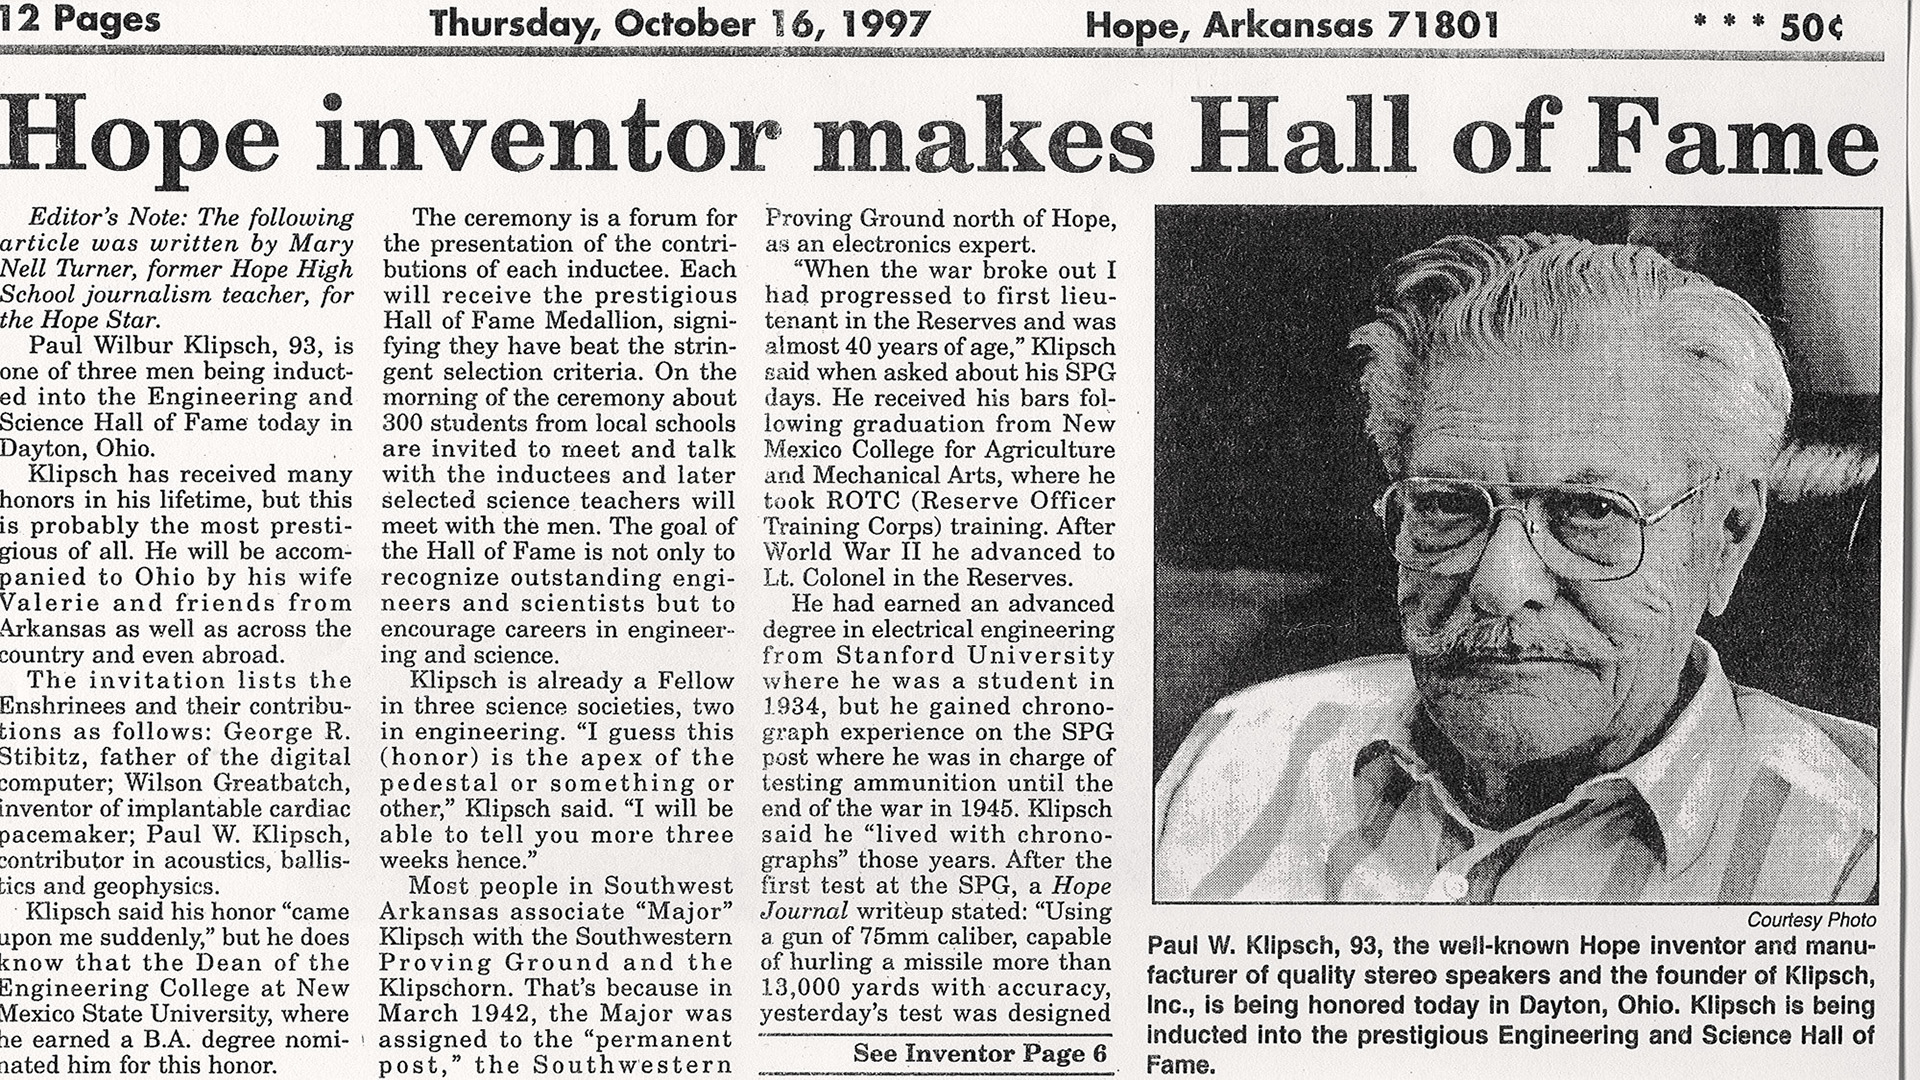 Hope-Newspaper-PWK-Hall-of-Fame-2000x1125